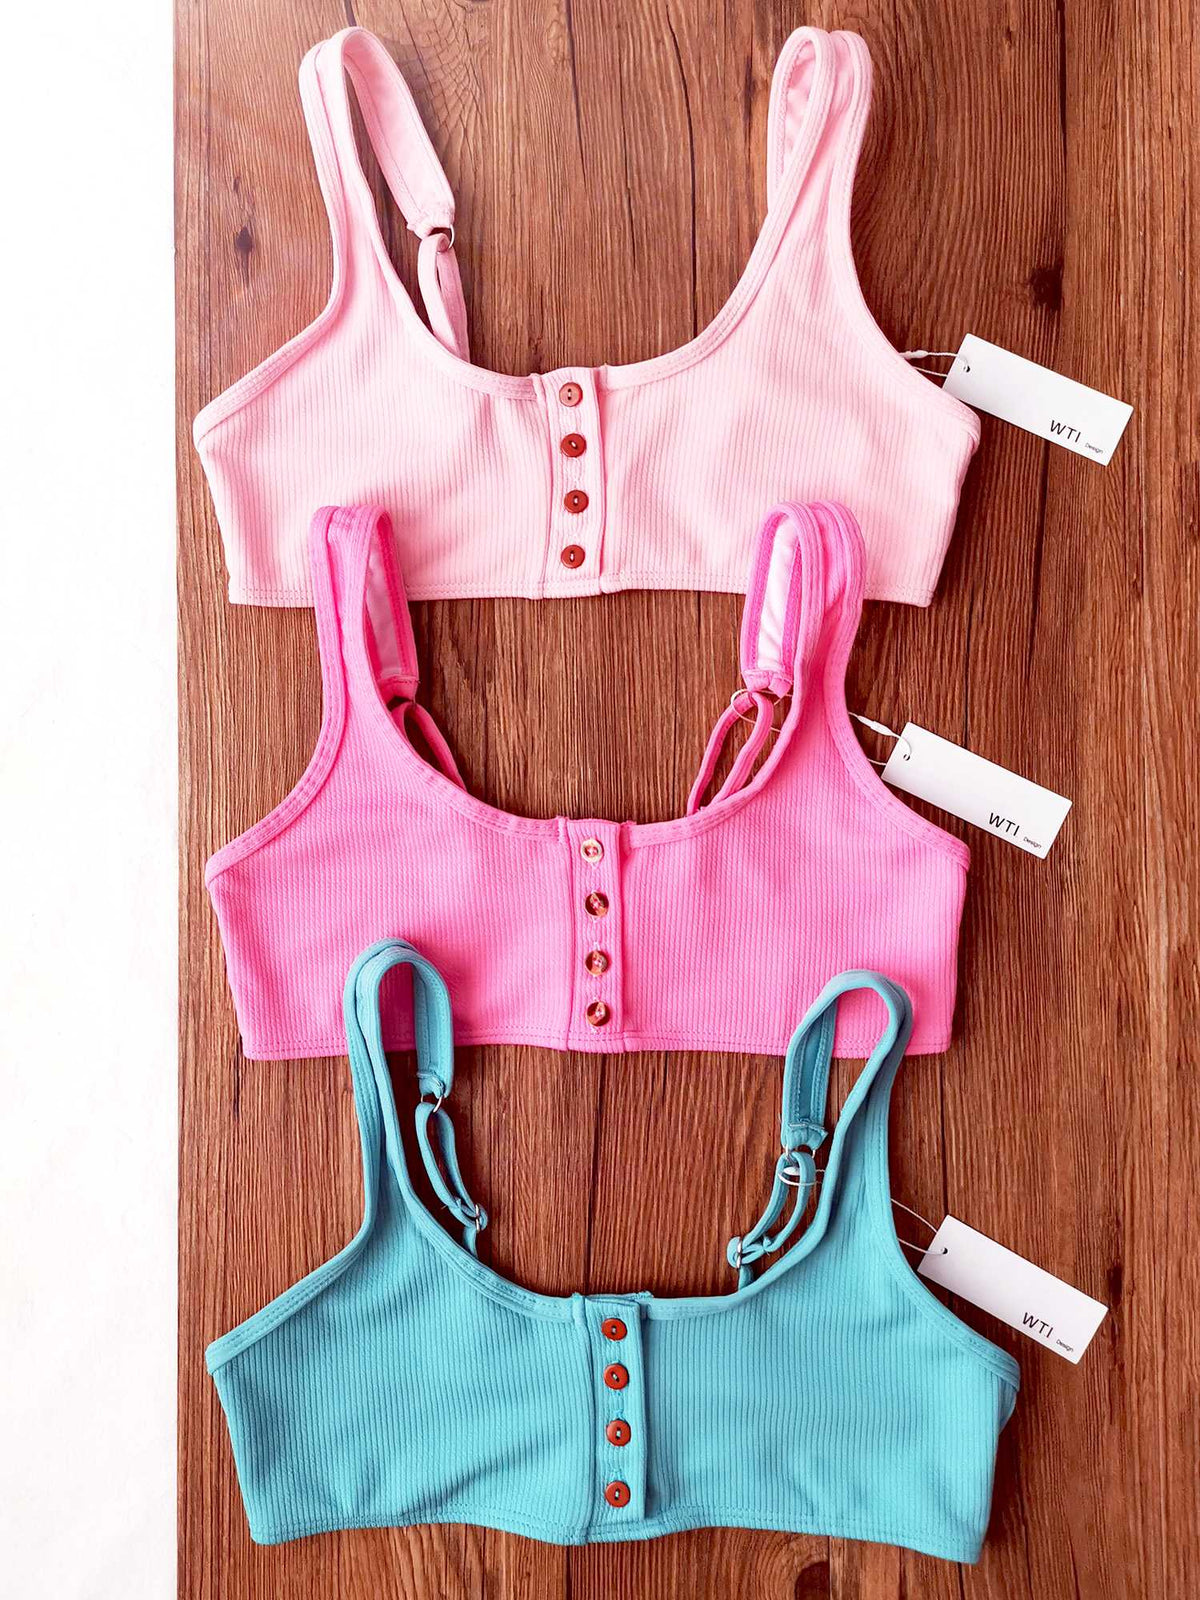 Ribbed Sporty Bikini Swimsuits Button Swimwear Up Crop Top Set - worthtryit.com